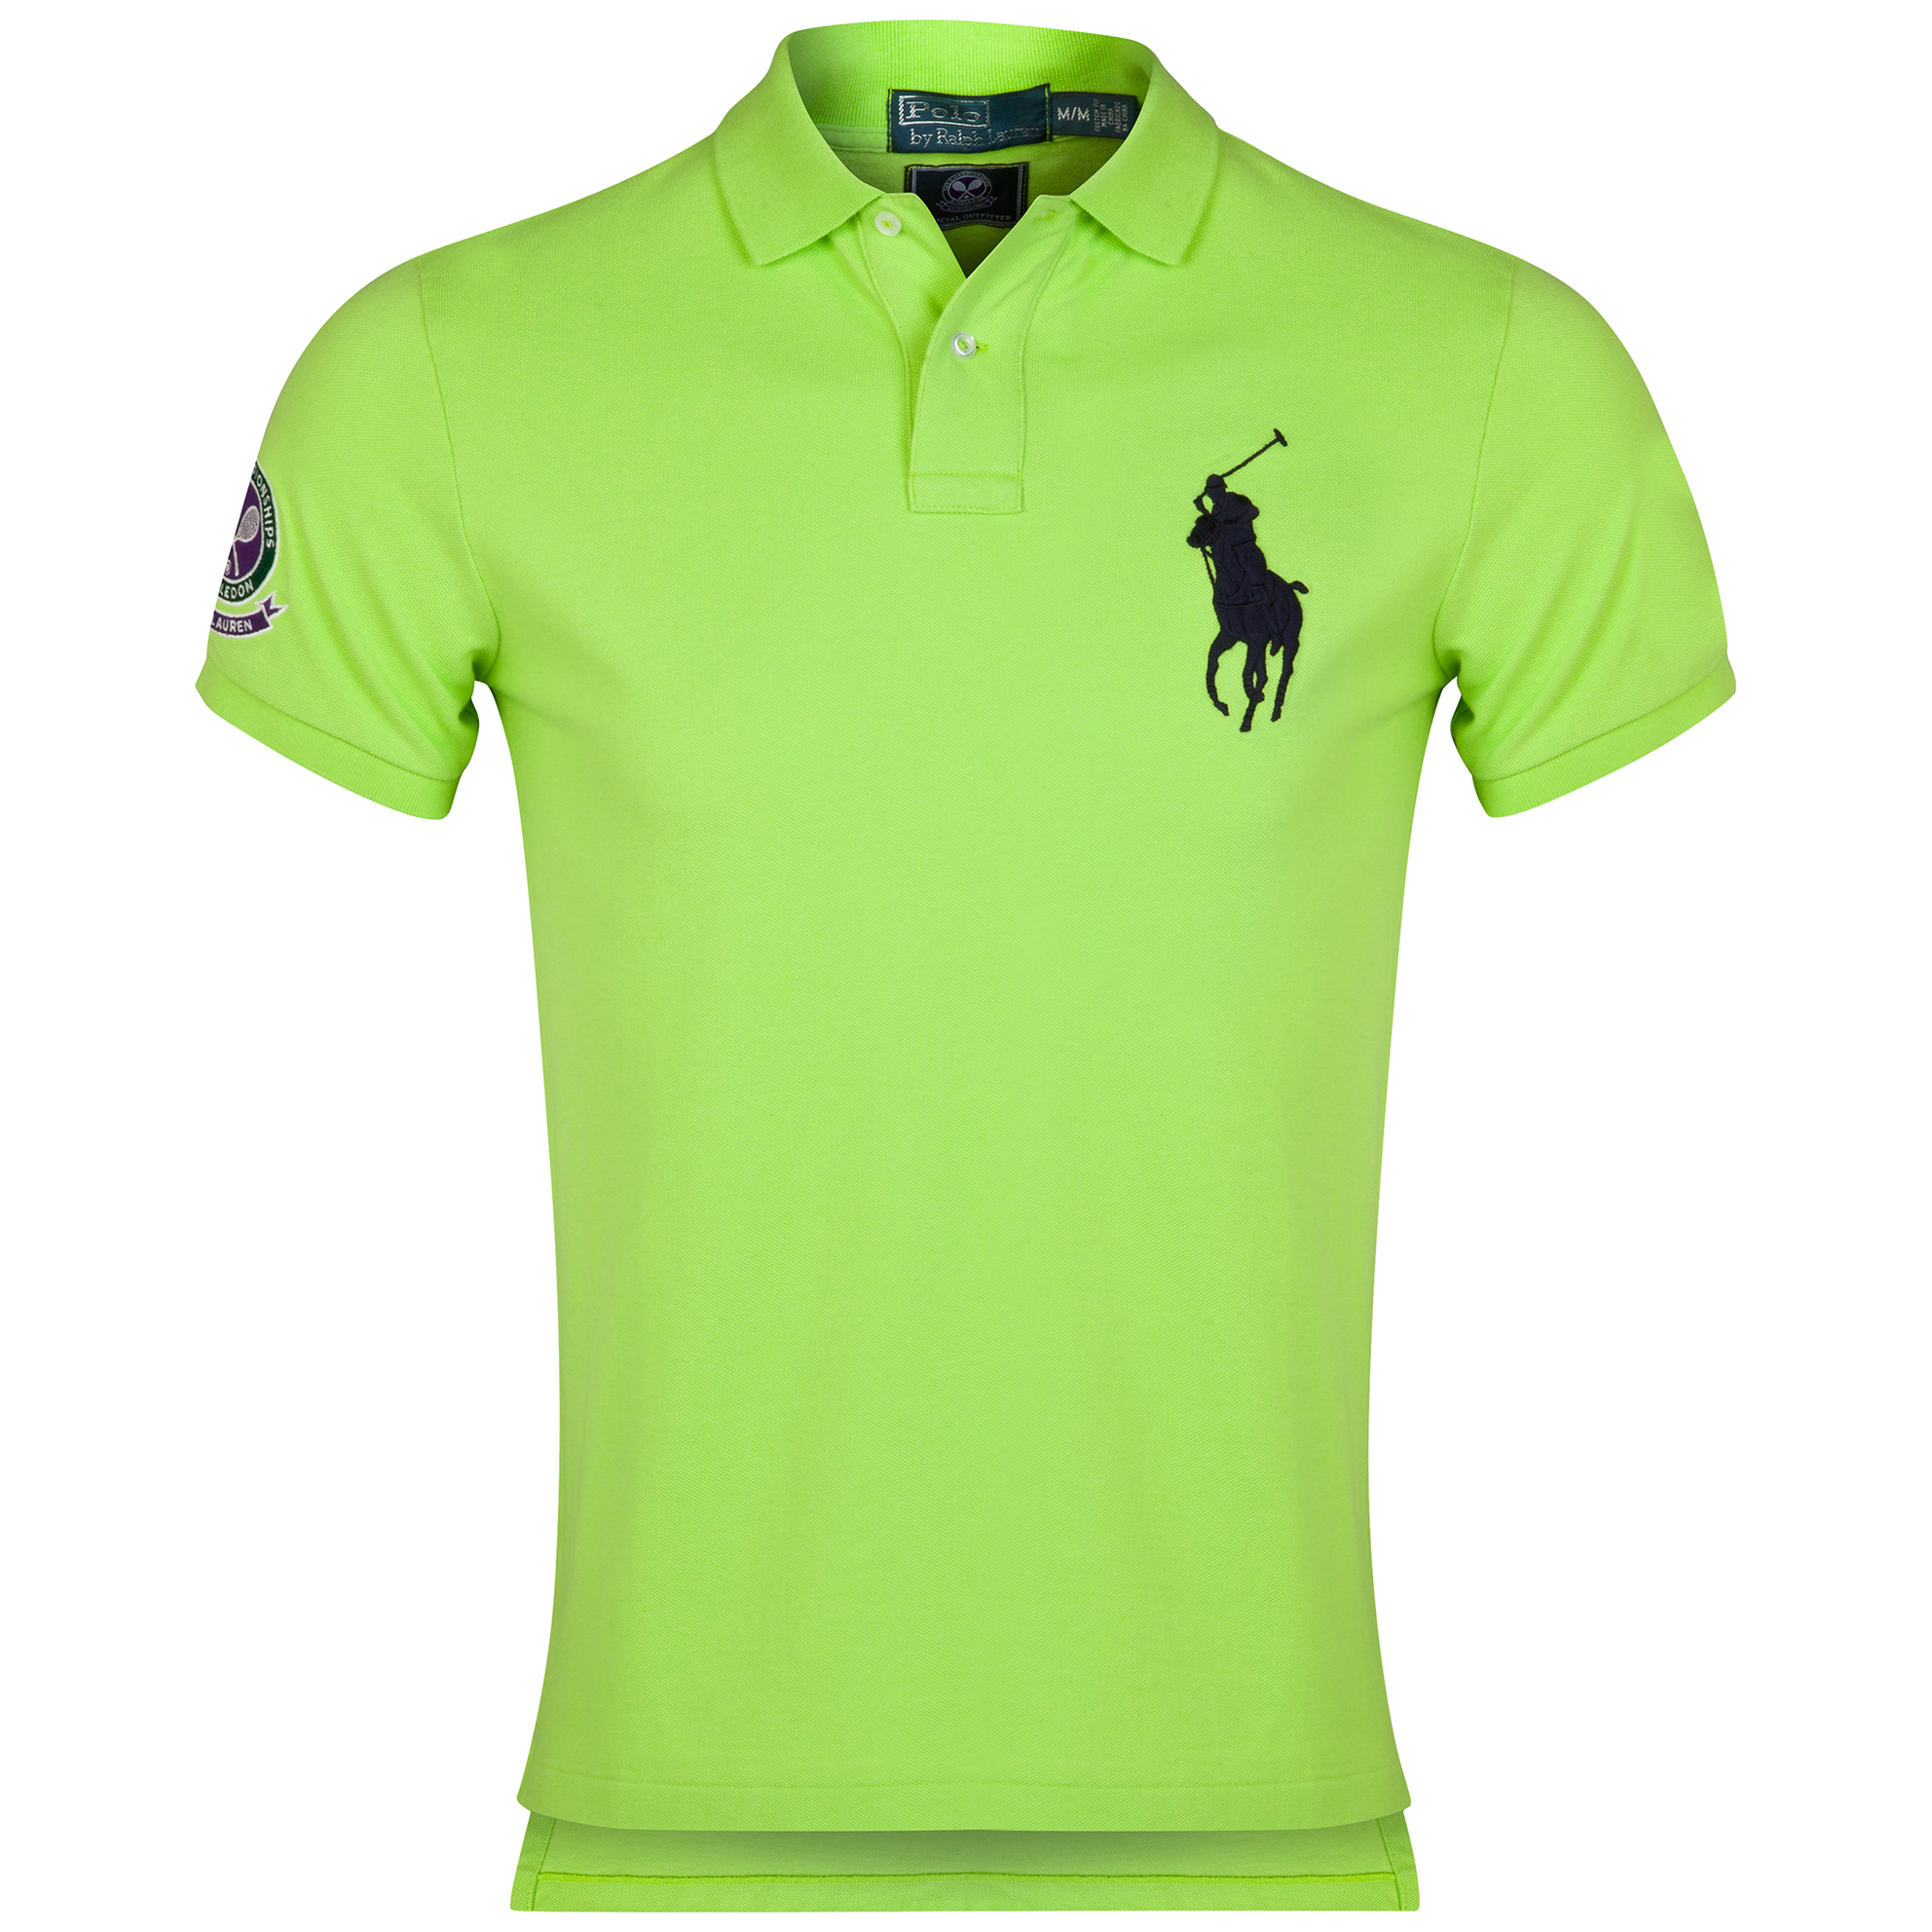 Wimbledon Polo Ralph Lauren Custom Fit Basic Mesh Polo - Marathon Green